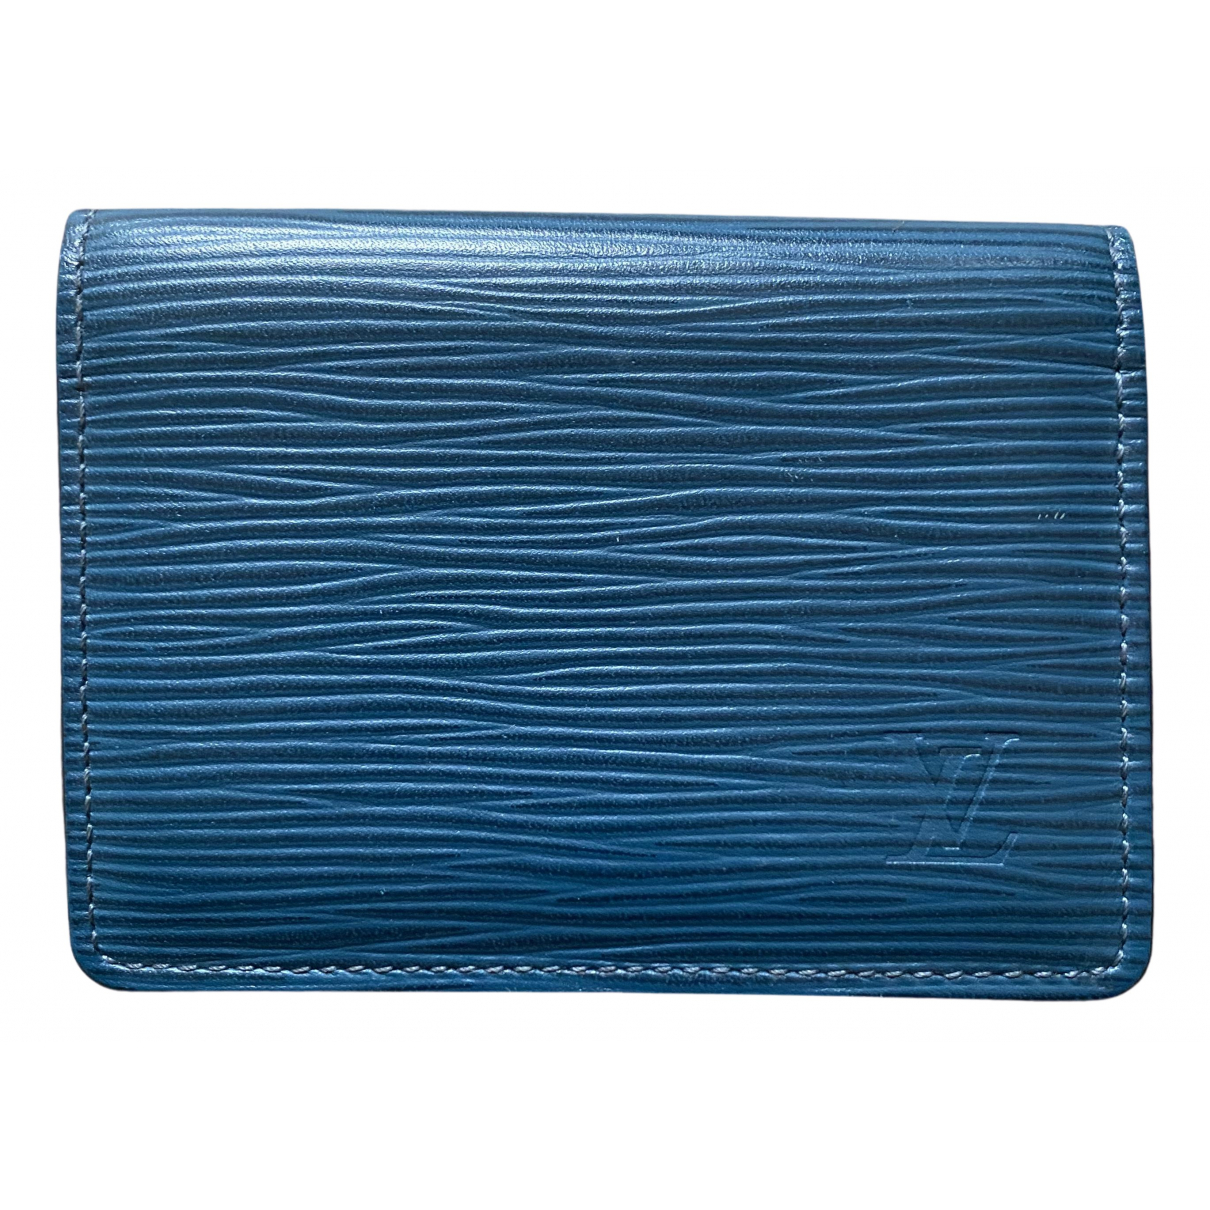 Louis Vuitton N Blue Leather Purses, wallet & cases for Women N